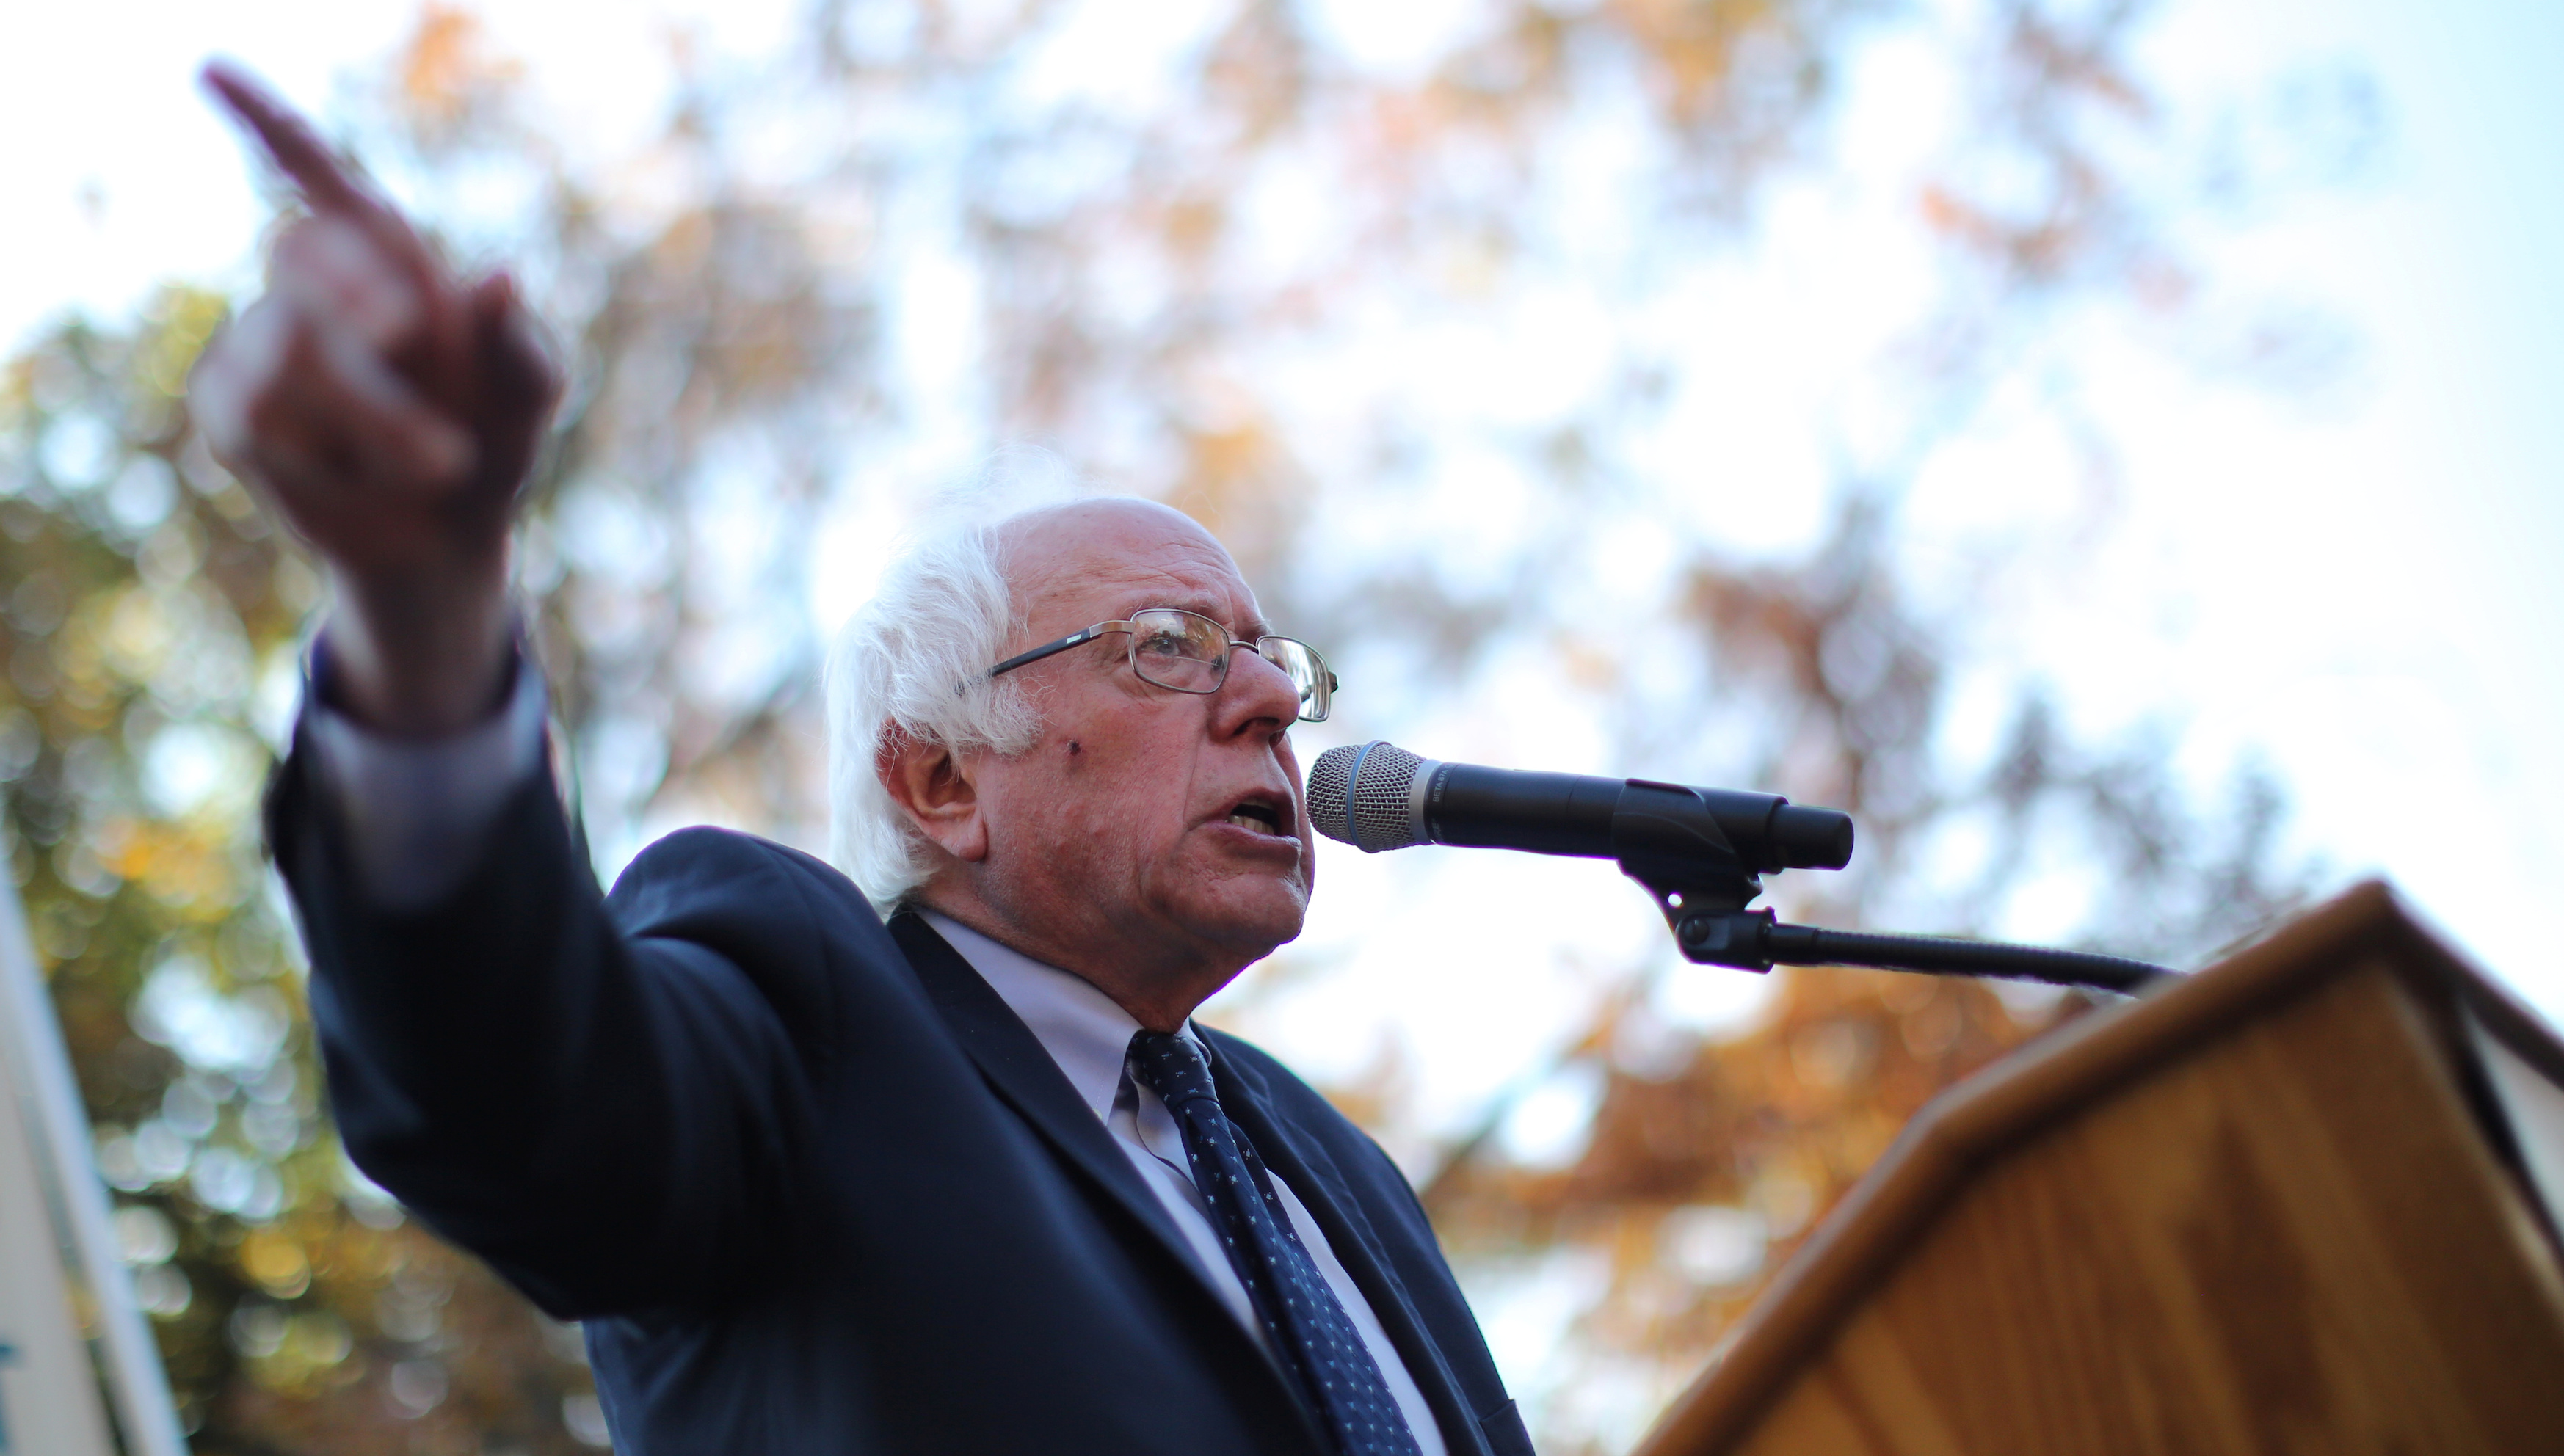 Former Democratic presidential candidate Senator Bernie Sanders (I-VT) speaks during a Capitol Hill rally to promote a people's agenda and a common commitment to stepping up grassroots mobilizations for economic and social justice and equality as the incoming Trump administration takes office in Washington, DC, U.S. November 17, 2016.